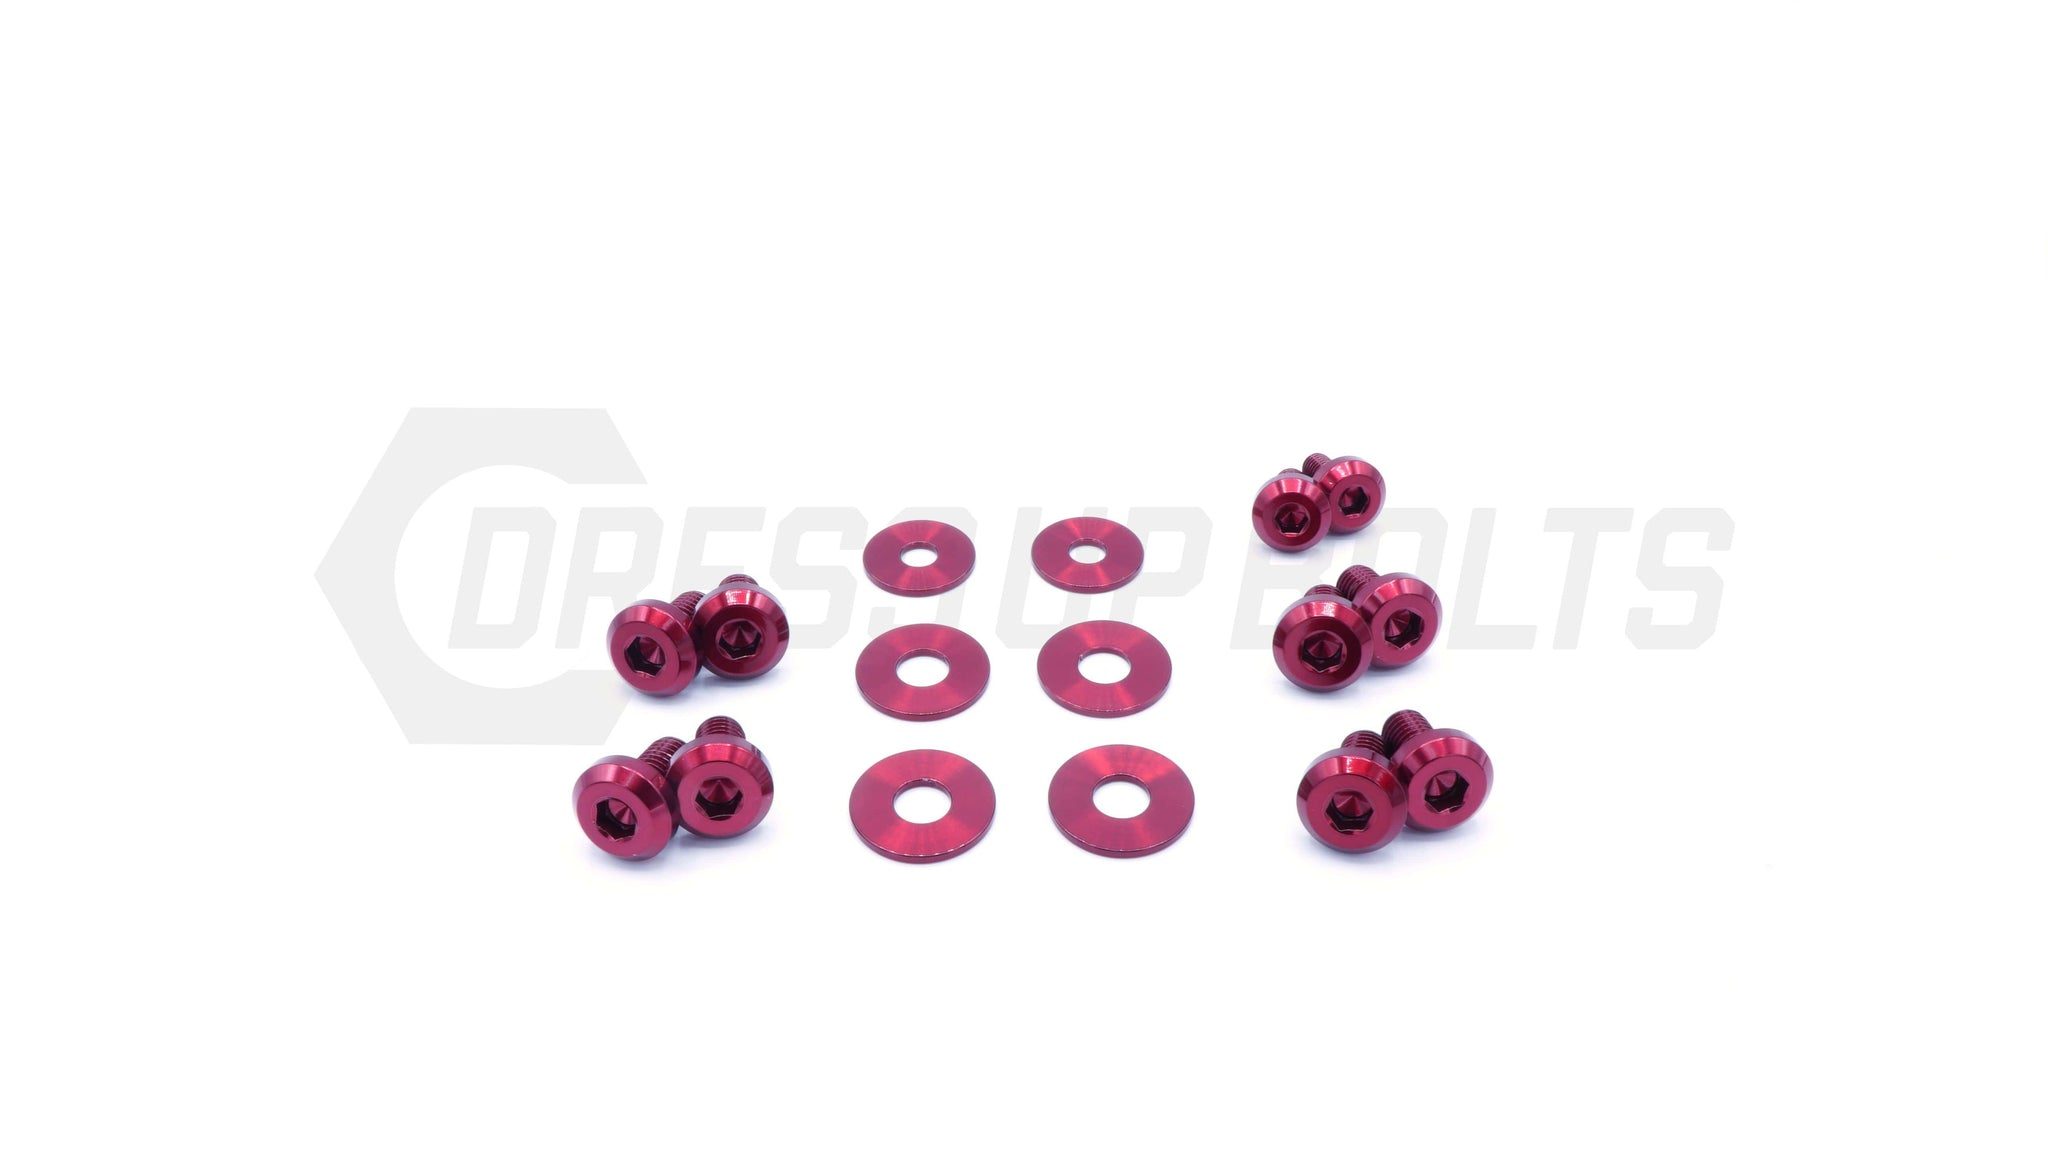 Scion FR-S (2013-2016) Titanium Dress Up Bolts Trunk Kit - DressUpBolts.com